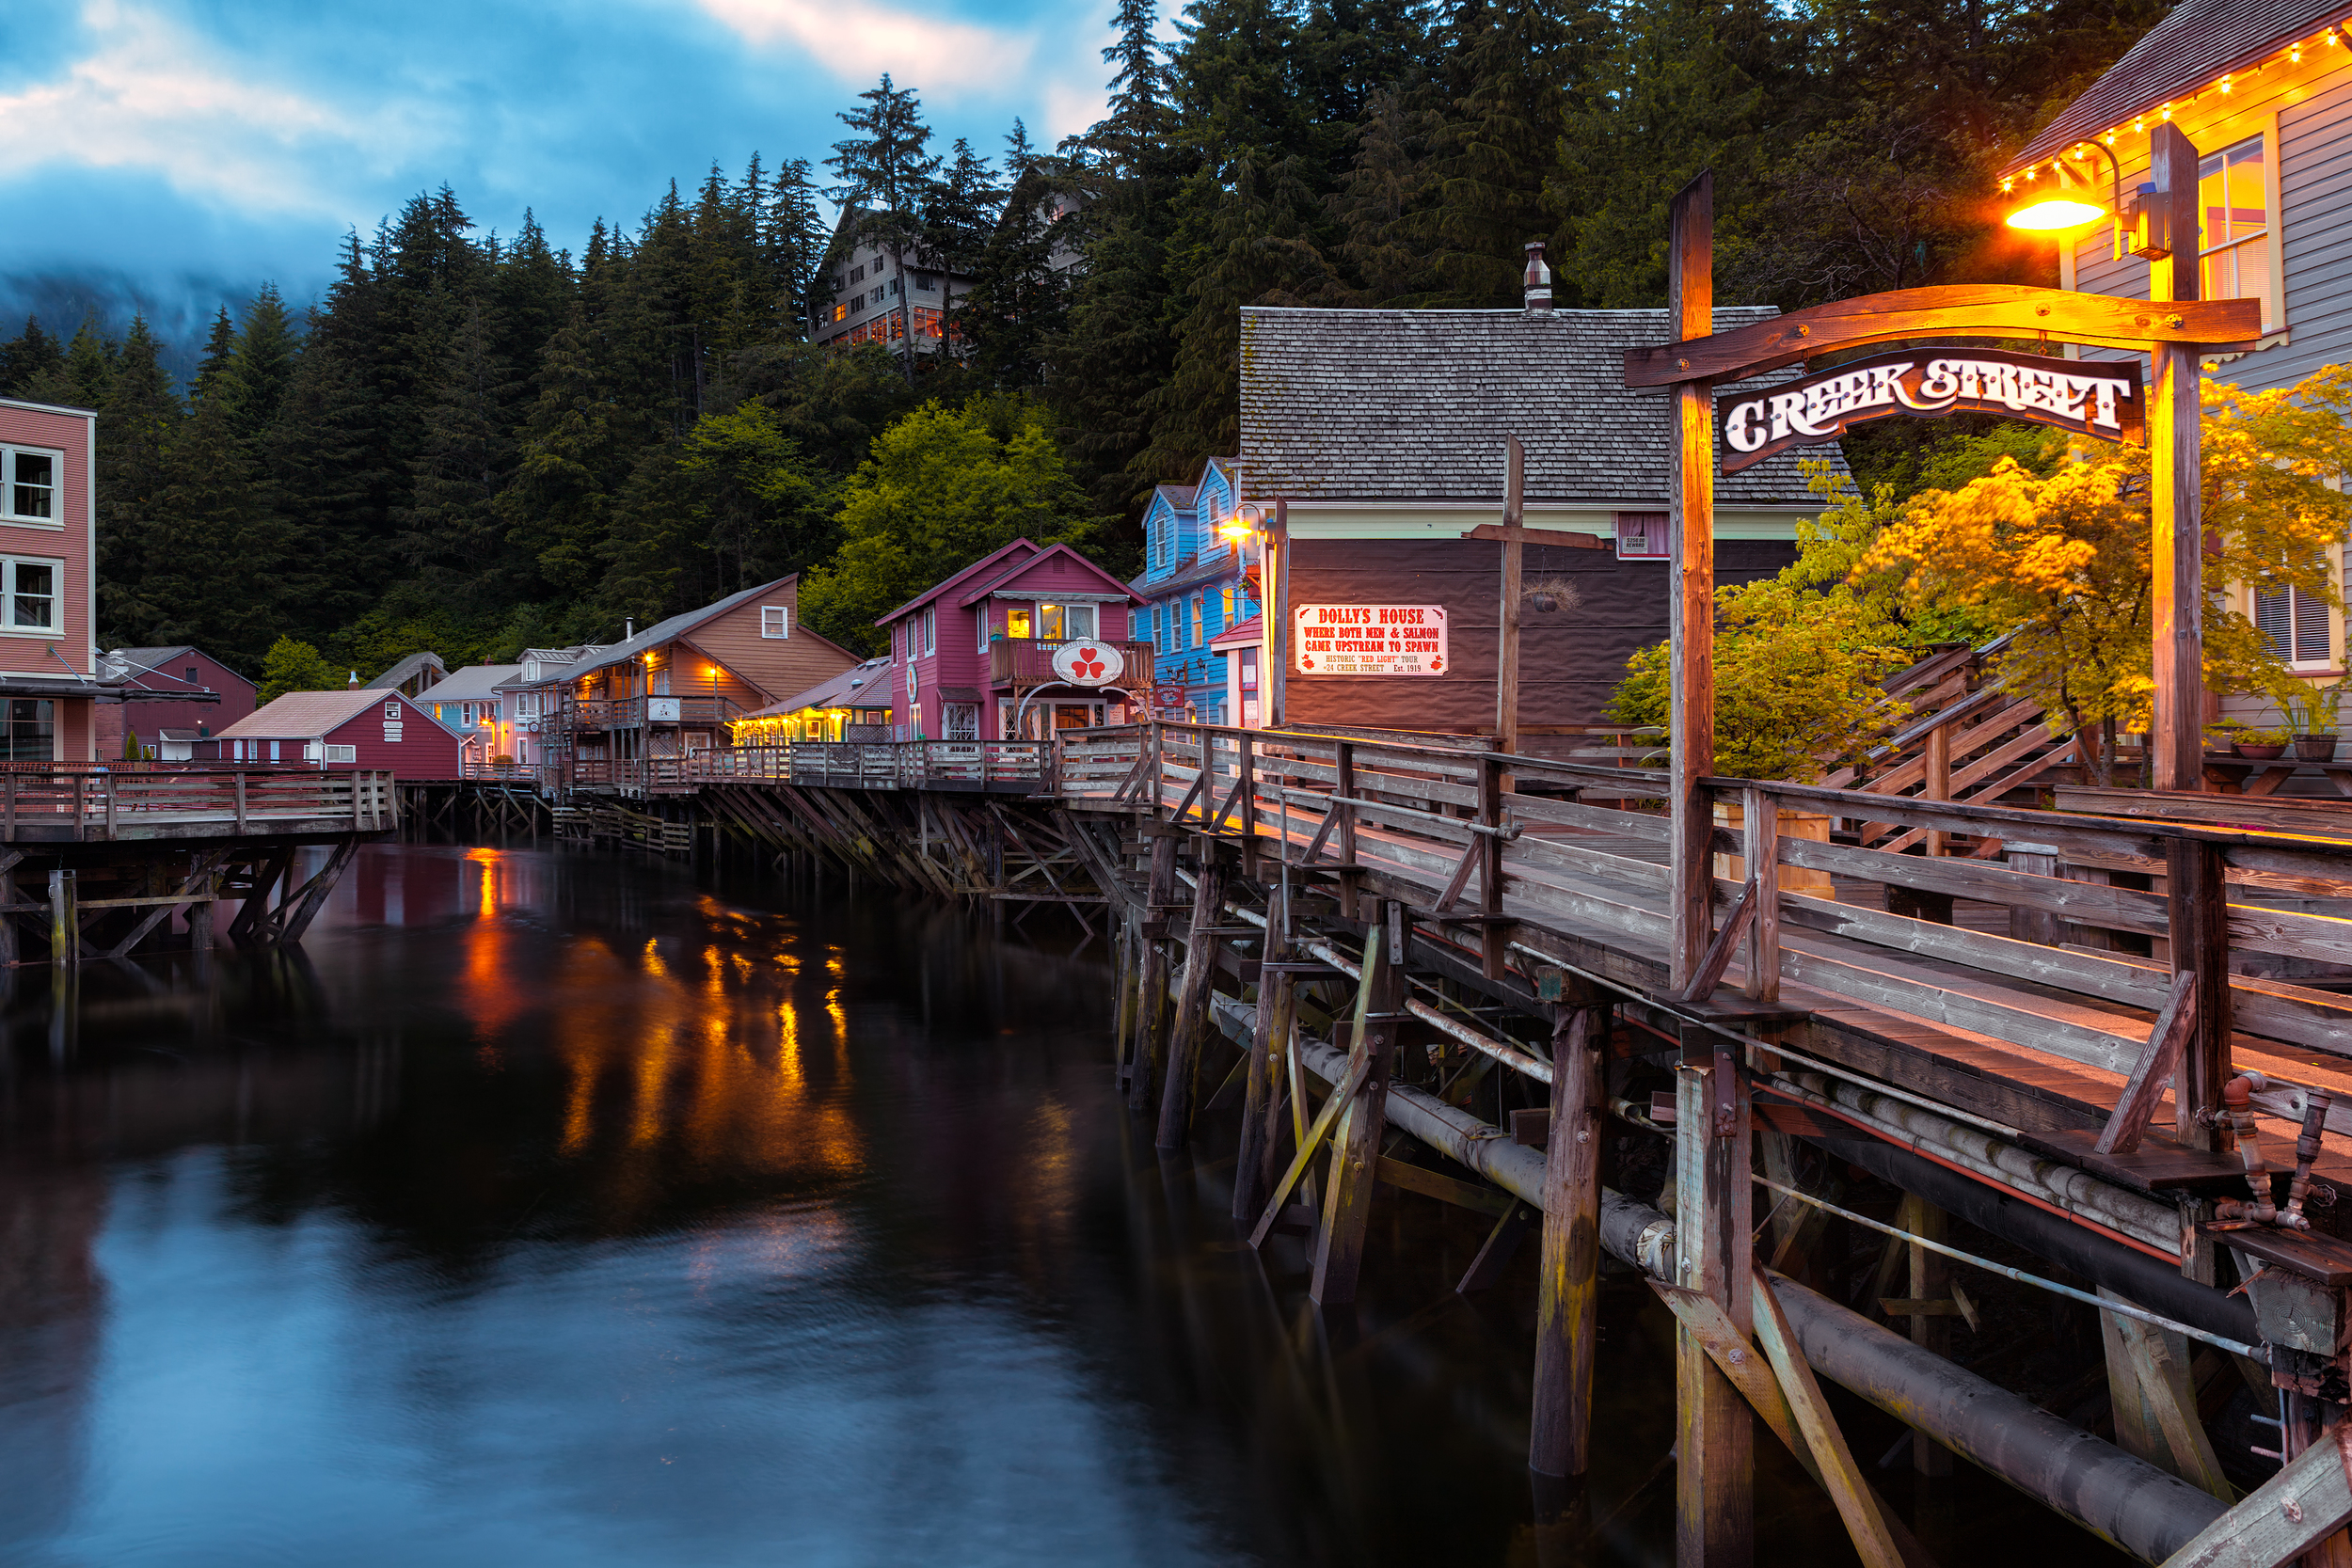 I know I already posted a shot of Creek Street, but this is an iconic image and I couldn't leave Ketchikan without taking a stab at it. I absolutely love the way this shot turned out.Shot with Canon 5d Mark II